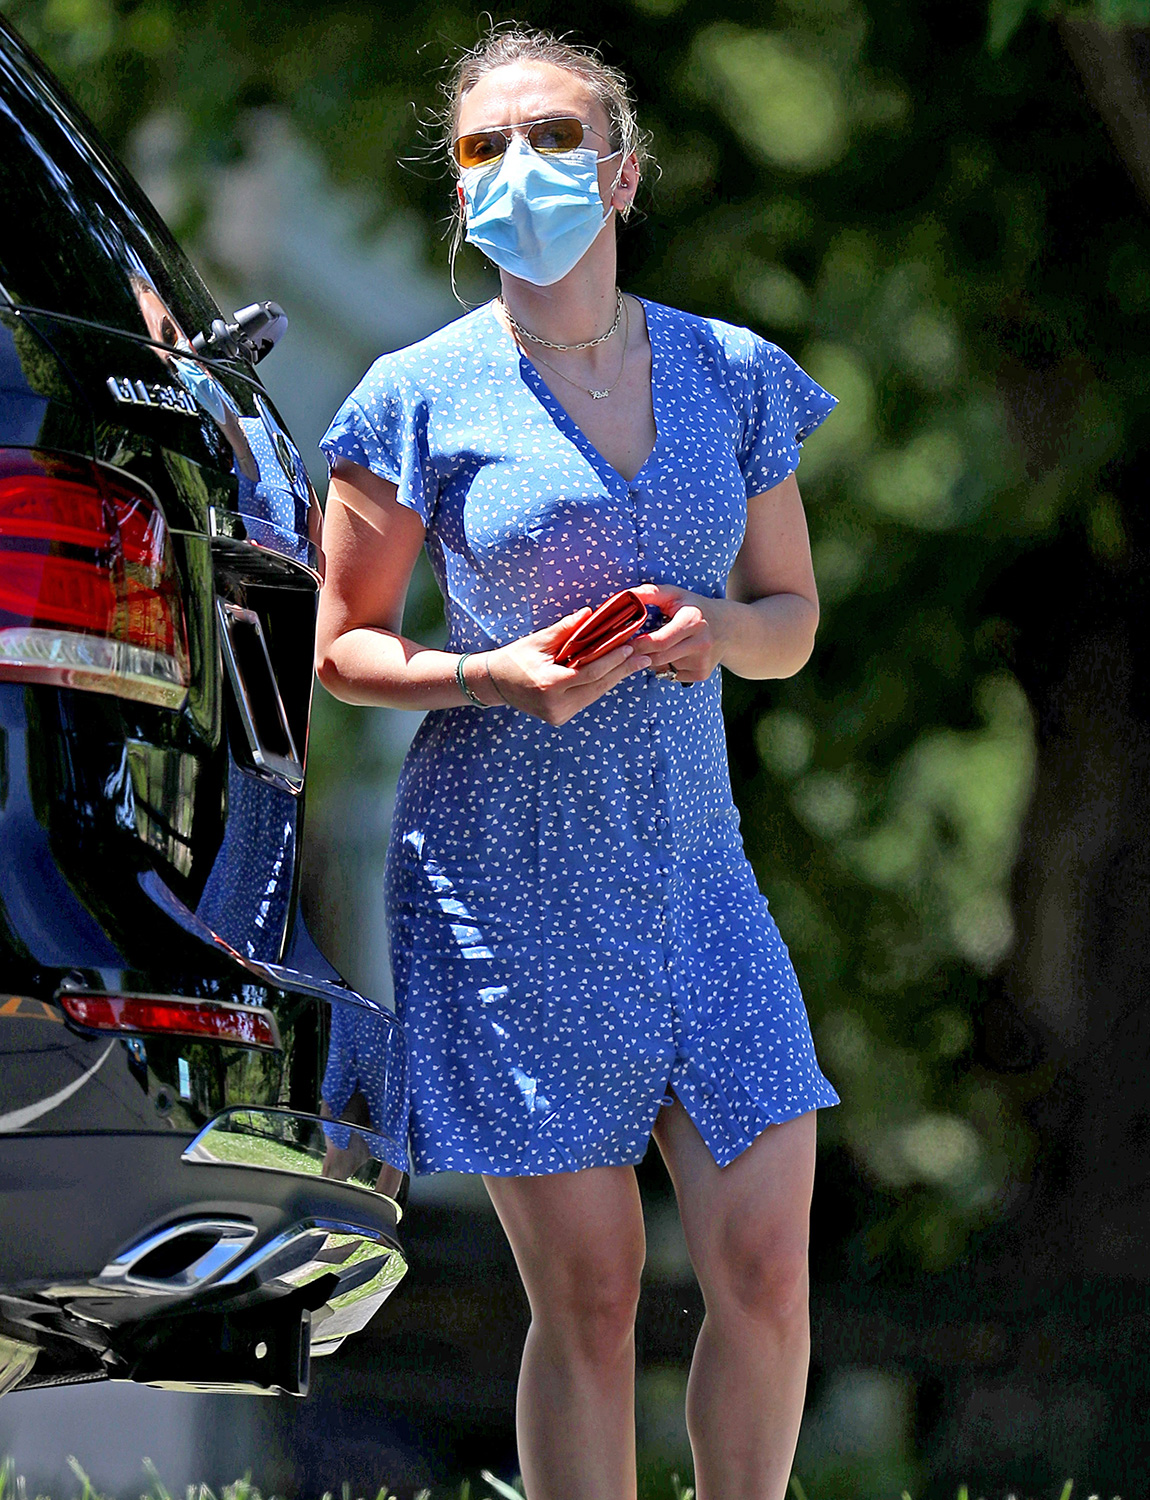 Scarlett Johansson Gets Her Hands Dirty While Cleaning Her SUV in The Hamptons.